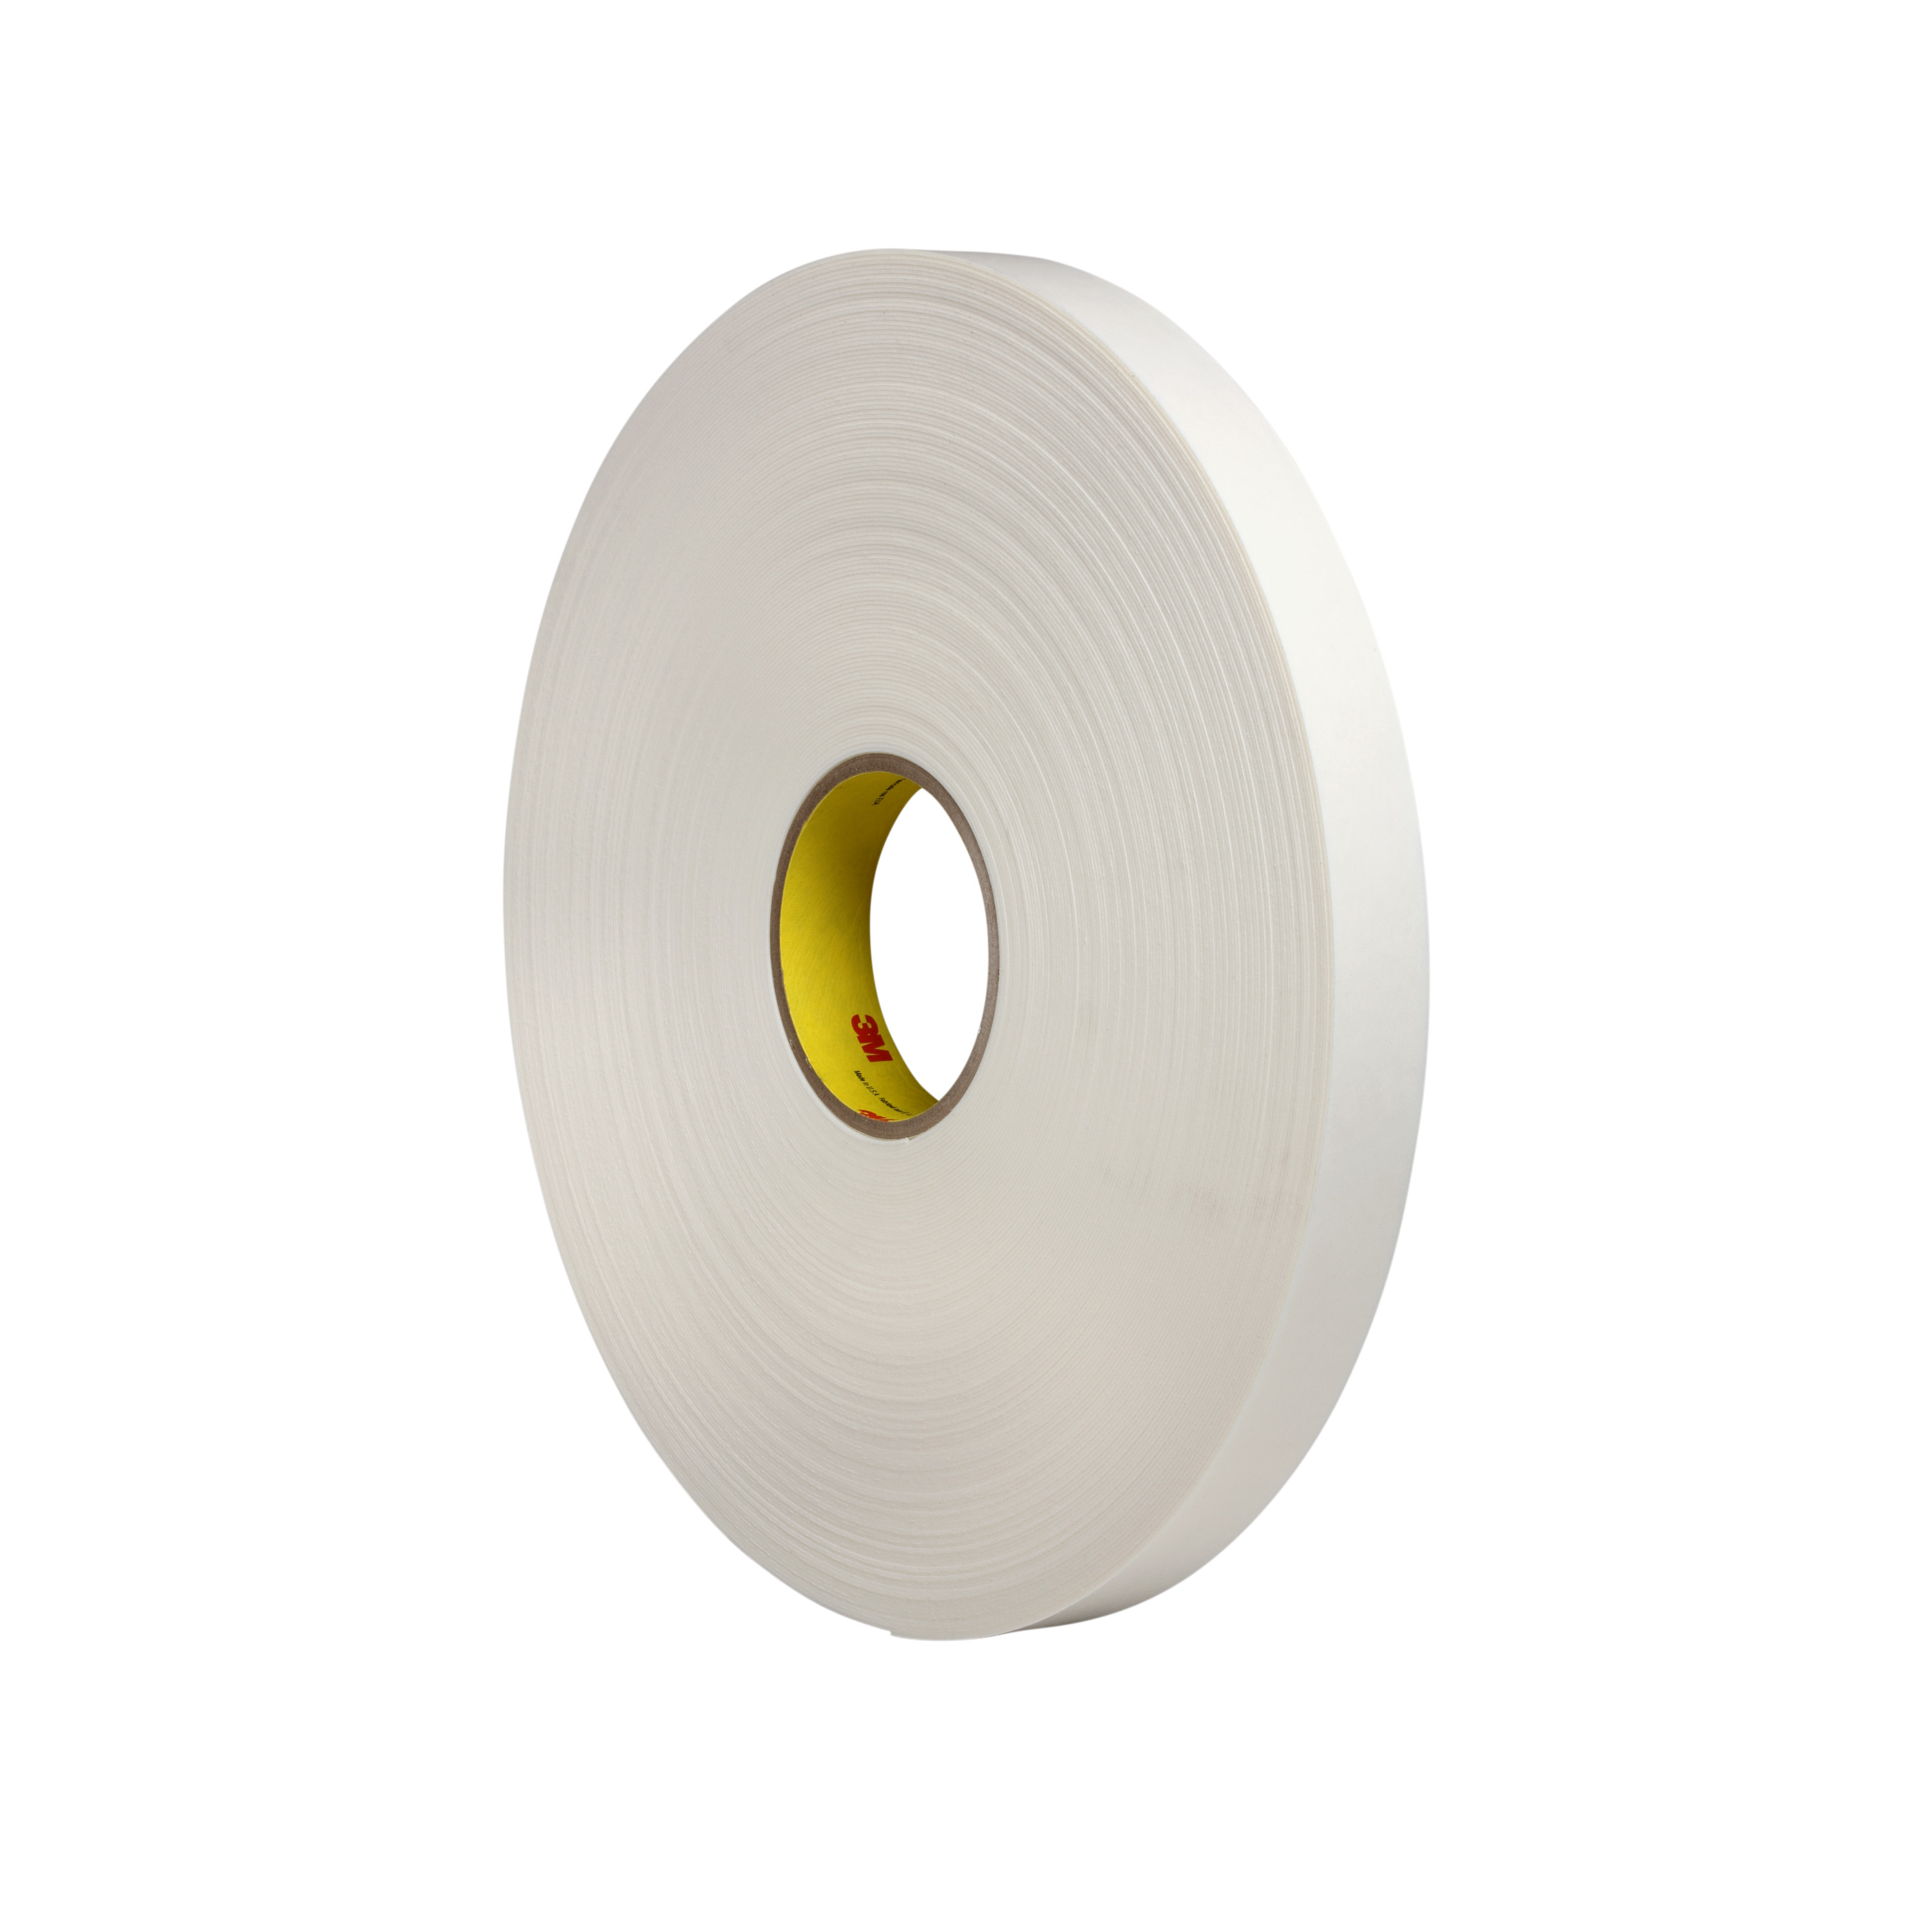 3M™ Double Coated Polyethylene Foam Tape 4462, White, 31 mil, Roll, Config